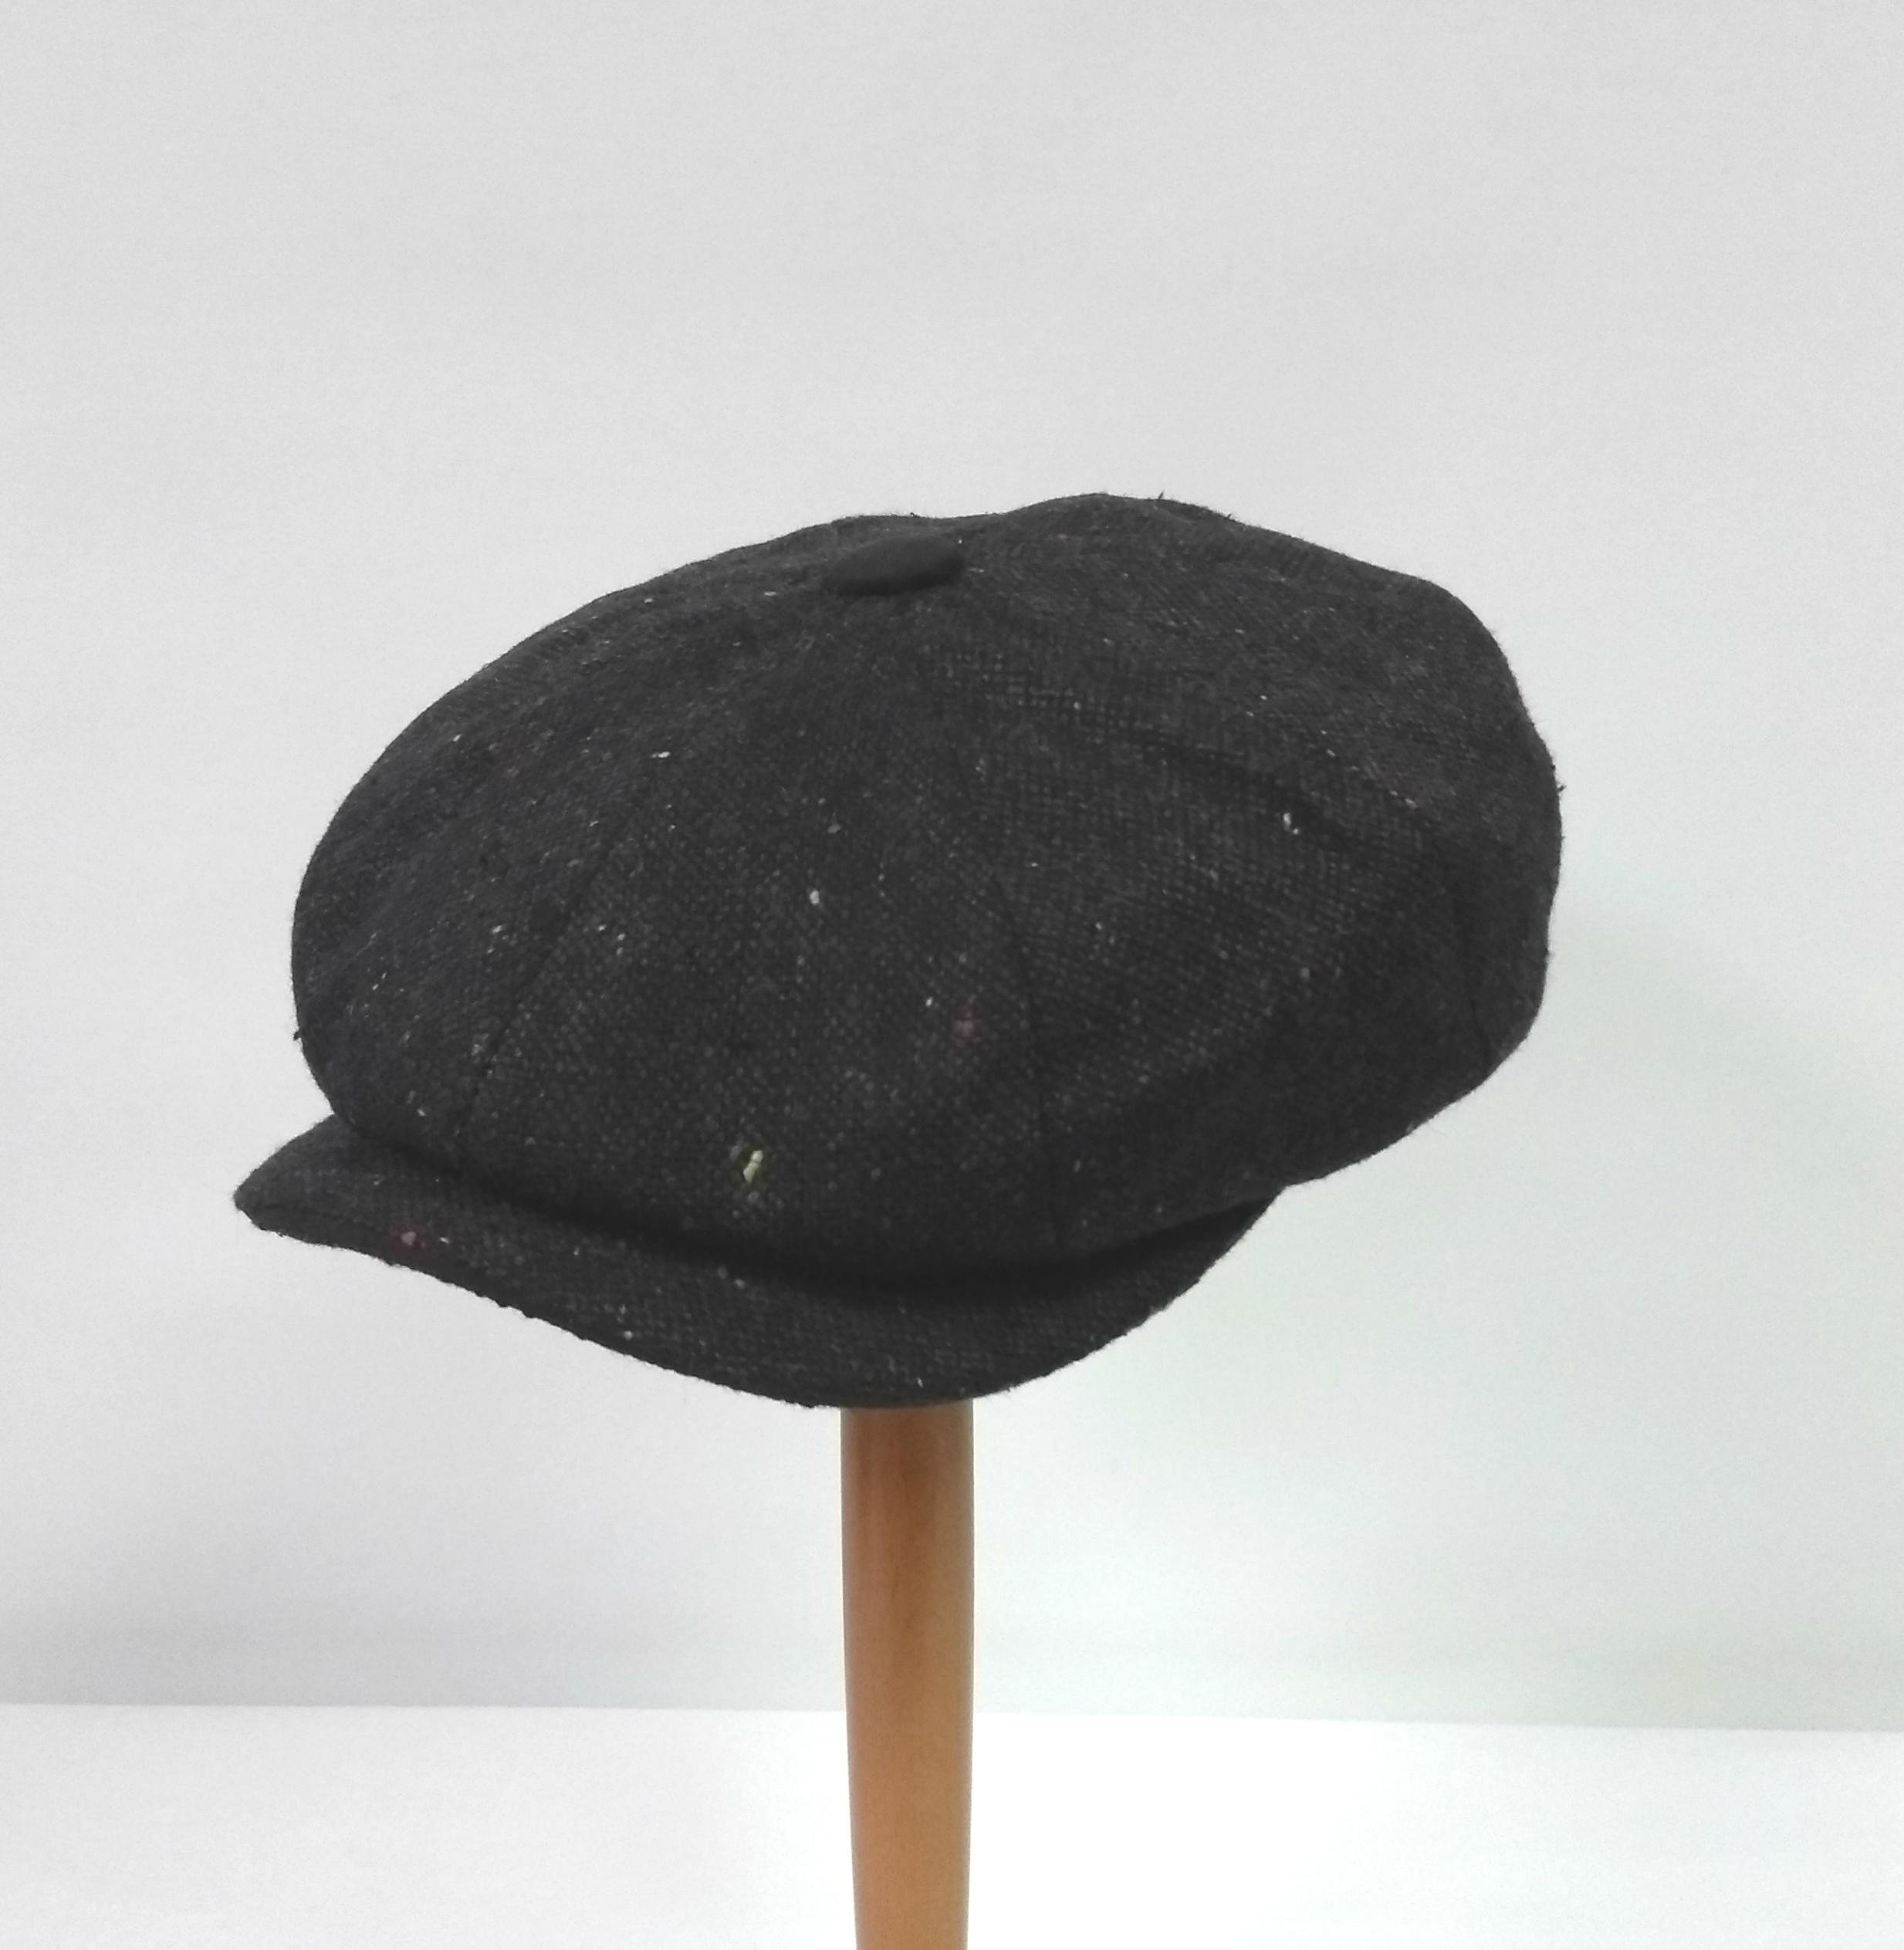 Whiteley Galactic Tweed Newsboy Cap - Charcoal/Sable